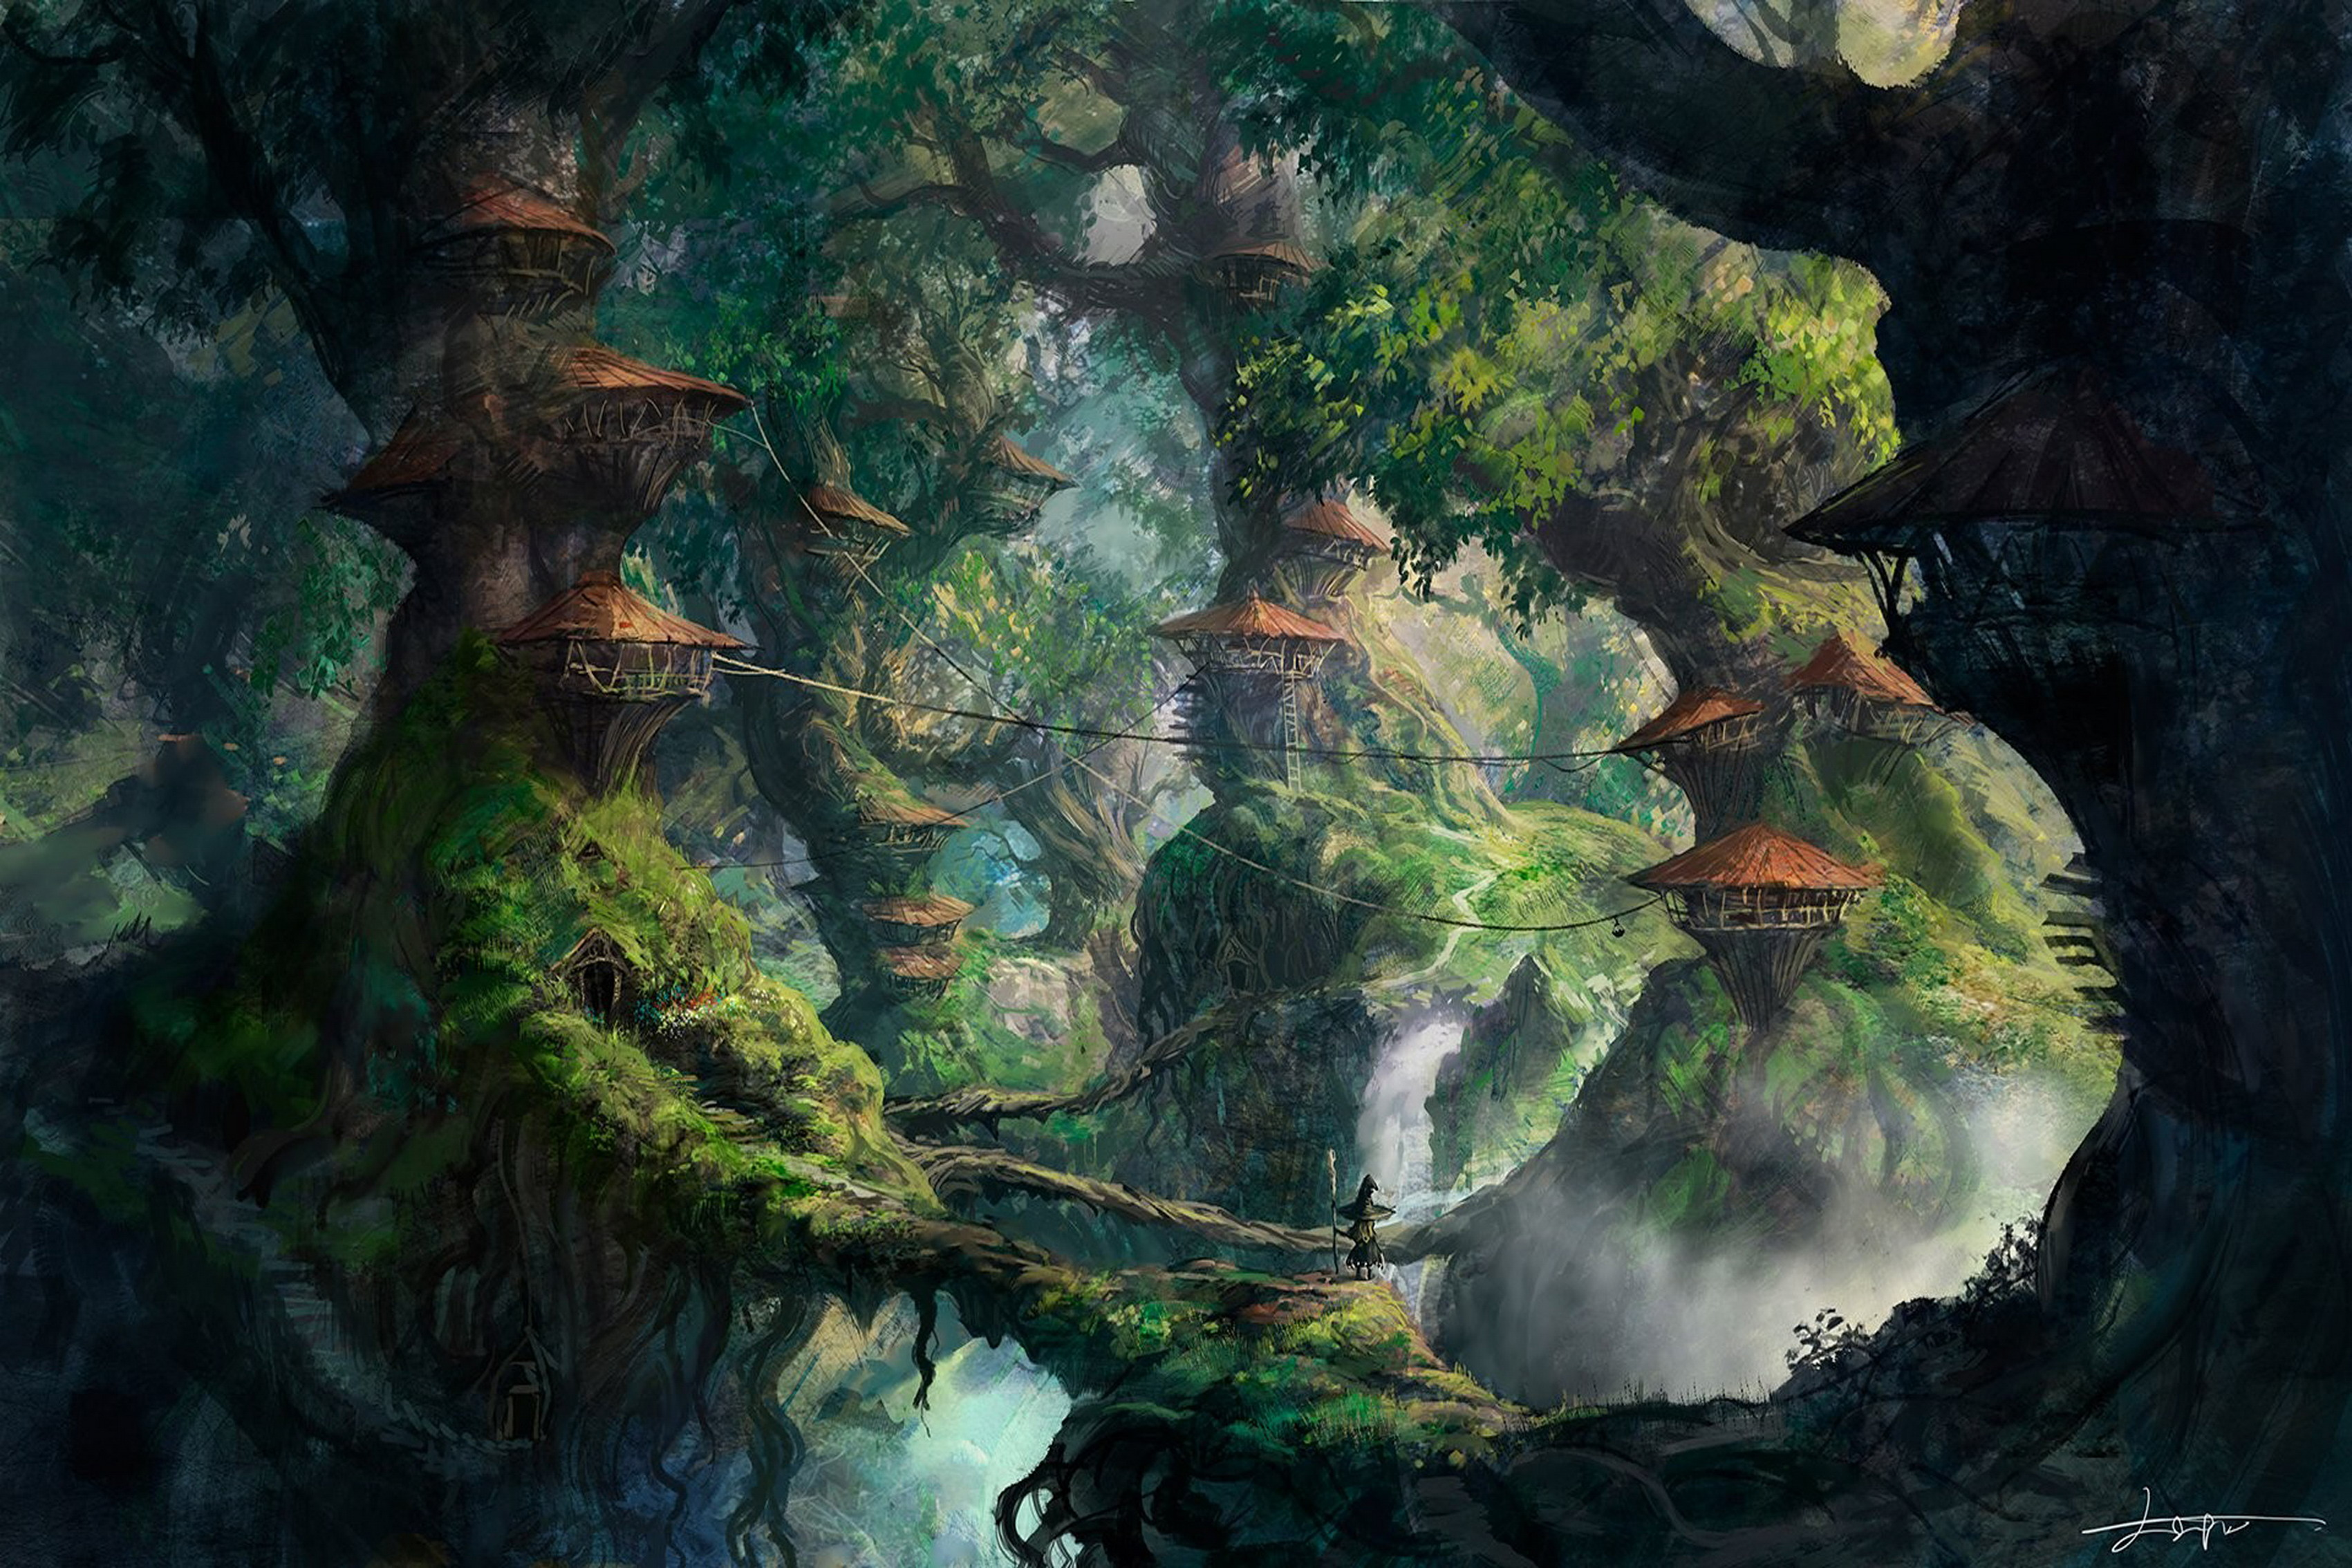 Fantasy art wizard forest trees artwork digital Living